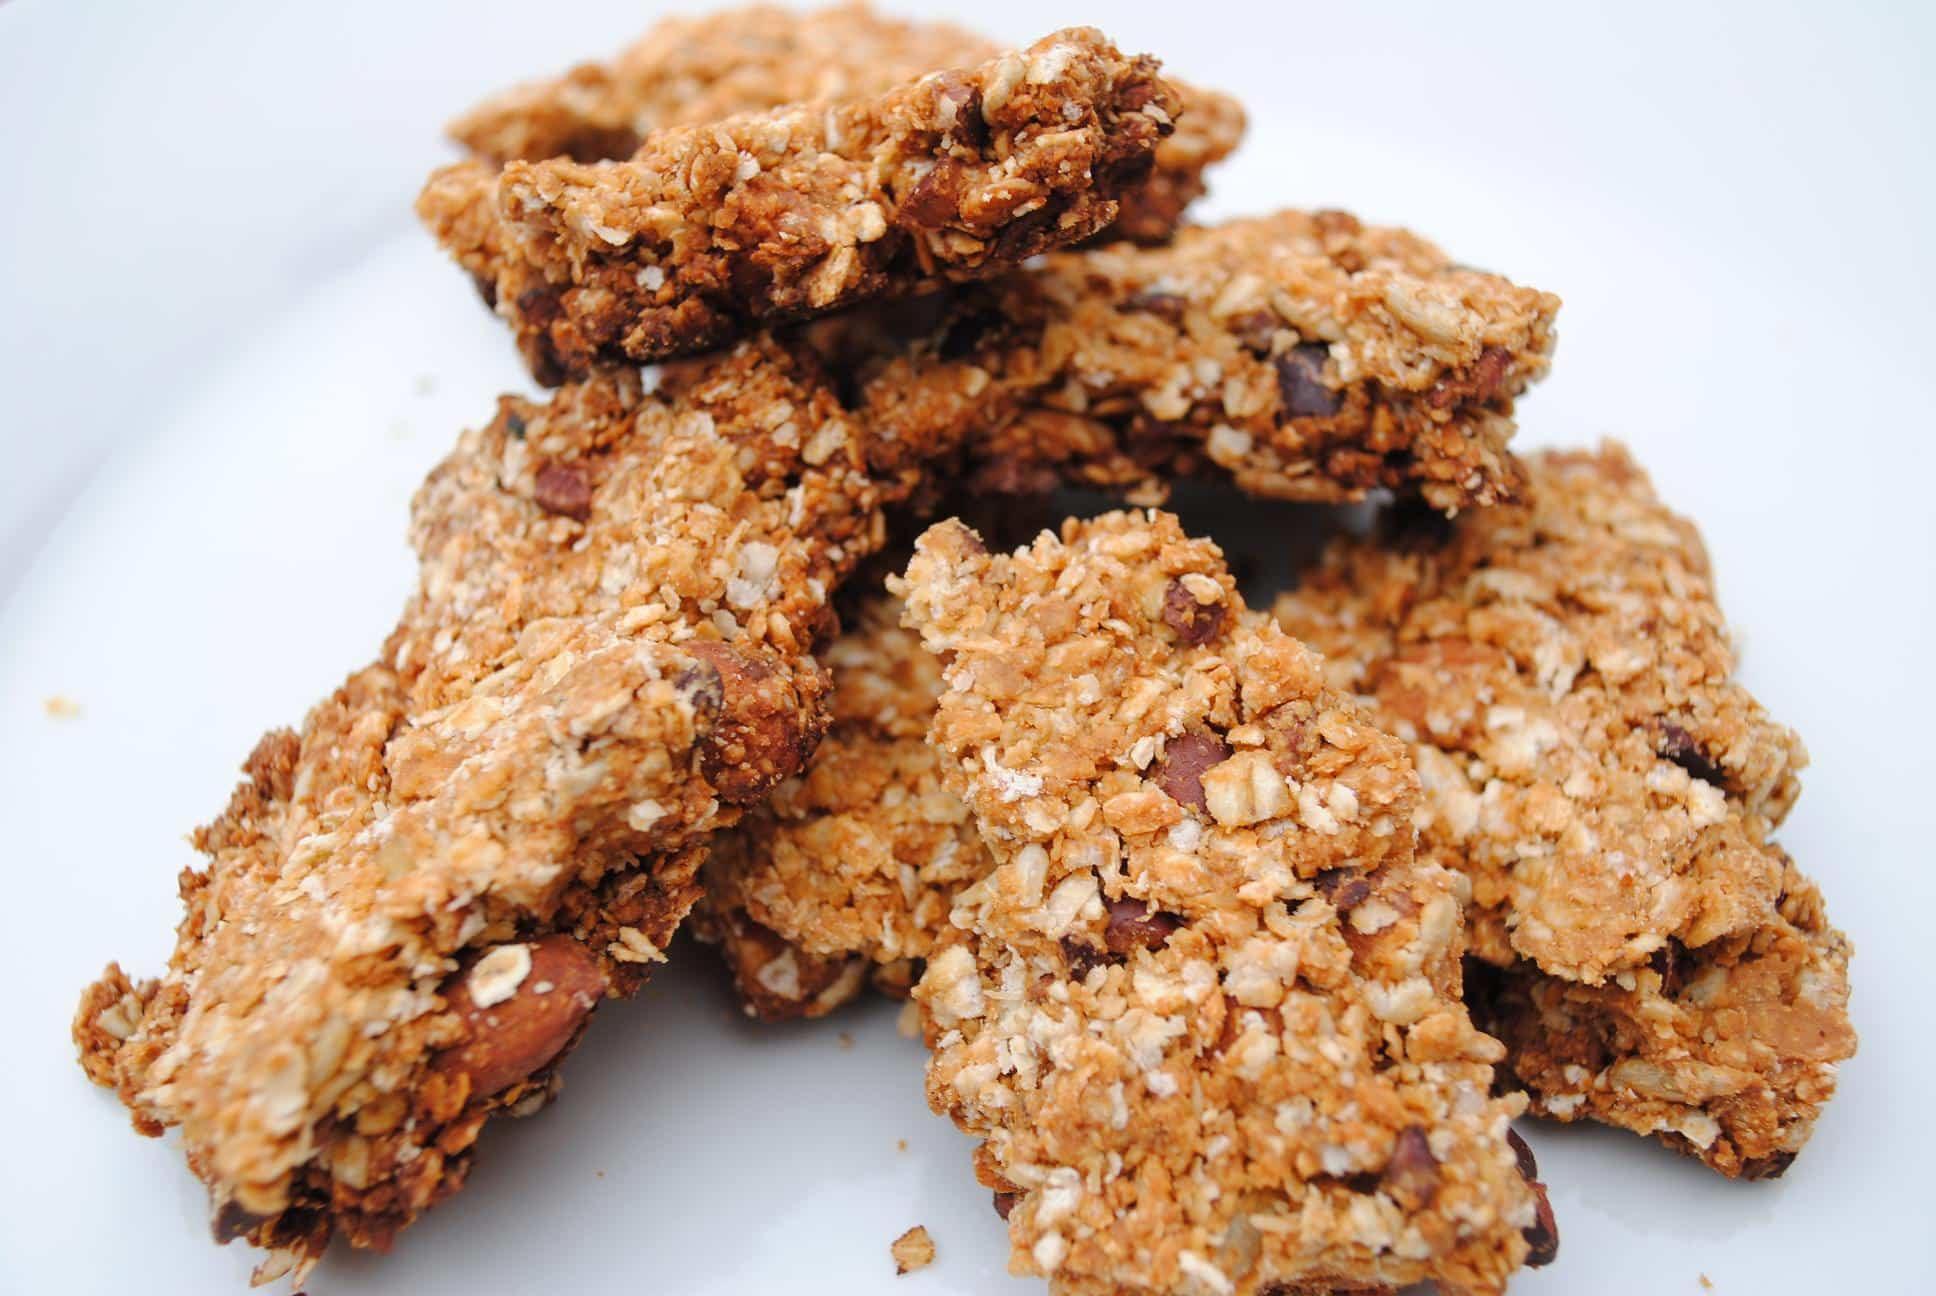 Homemade granola bars piled up on a white plate